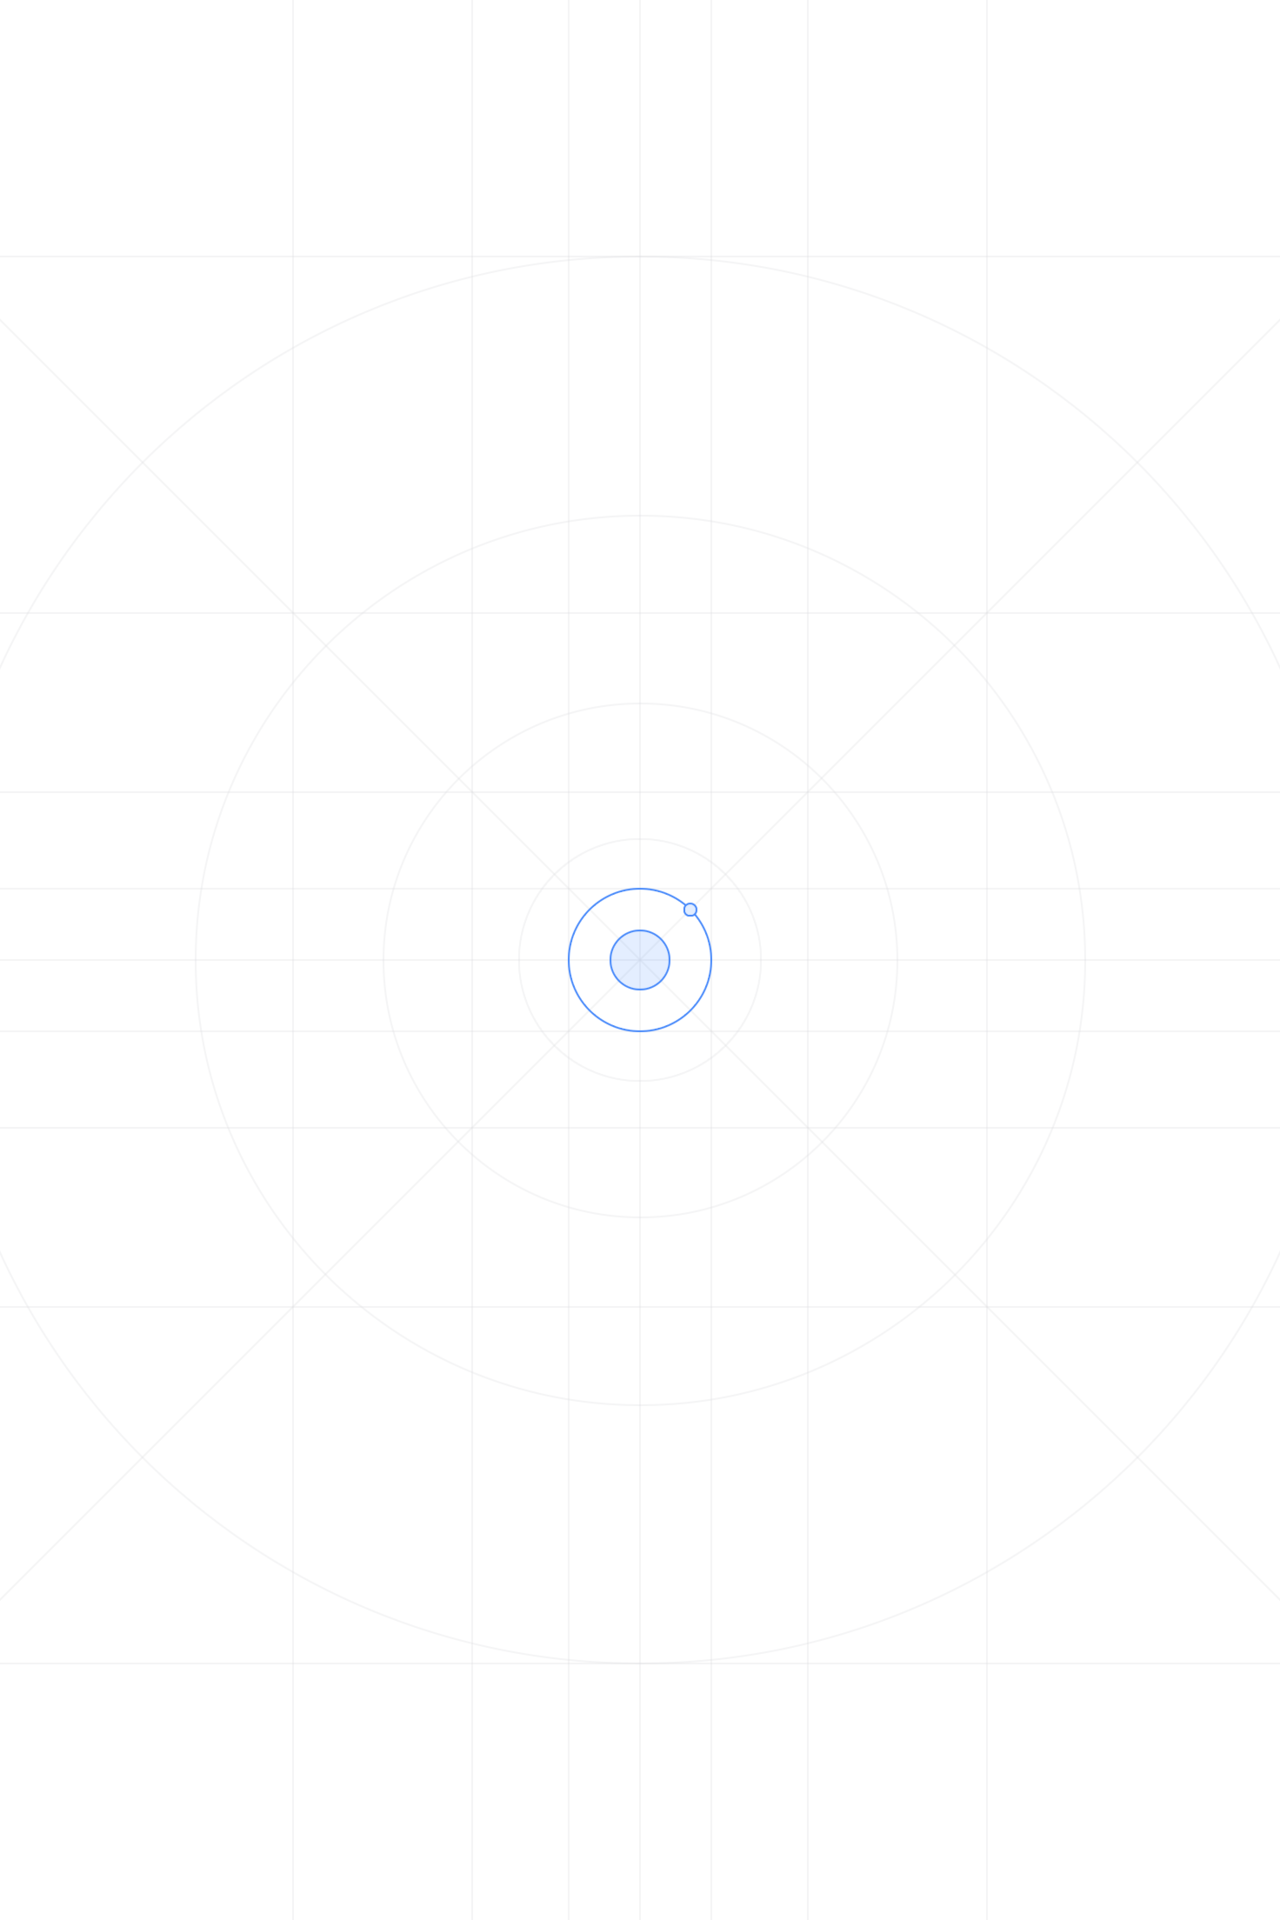 resources/android/splash/drawable-port-xxxhdpi-screen.png